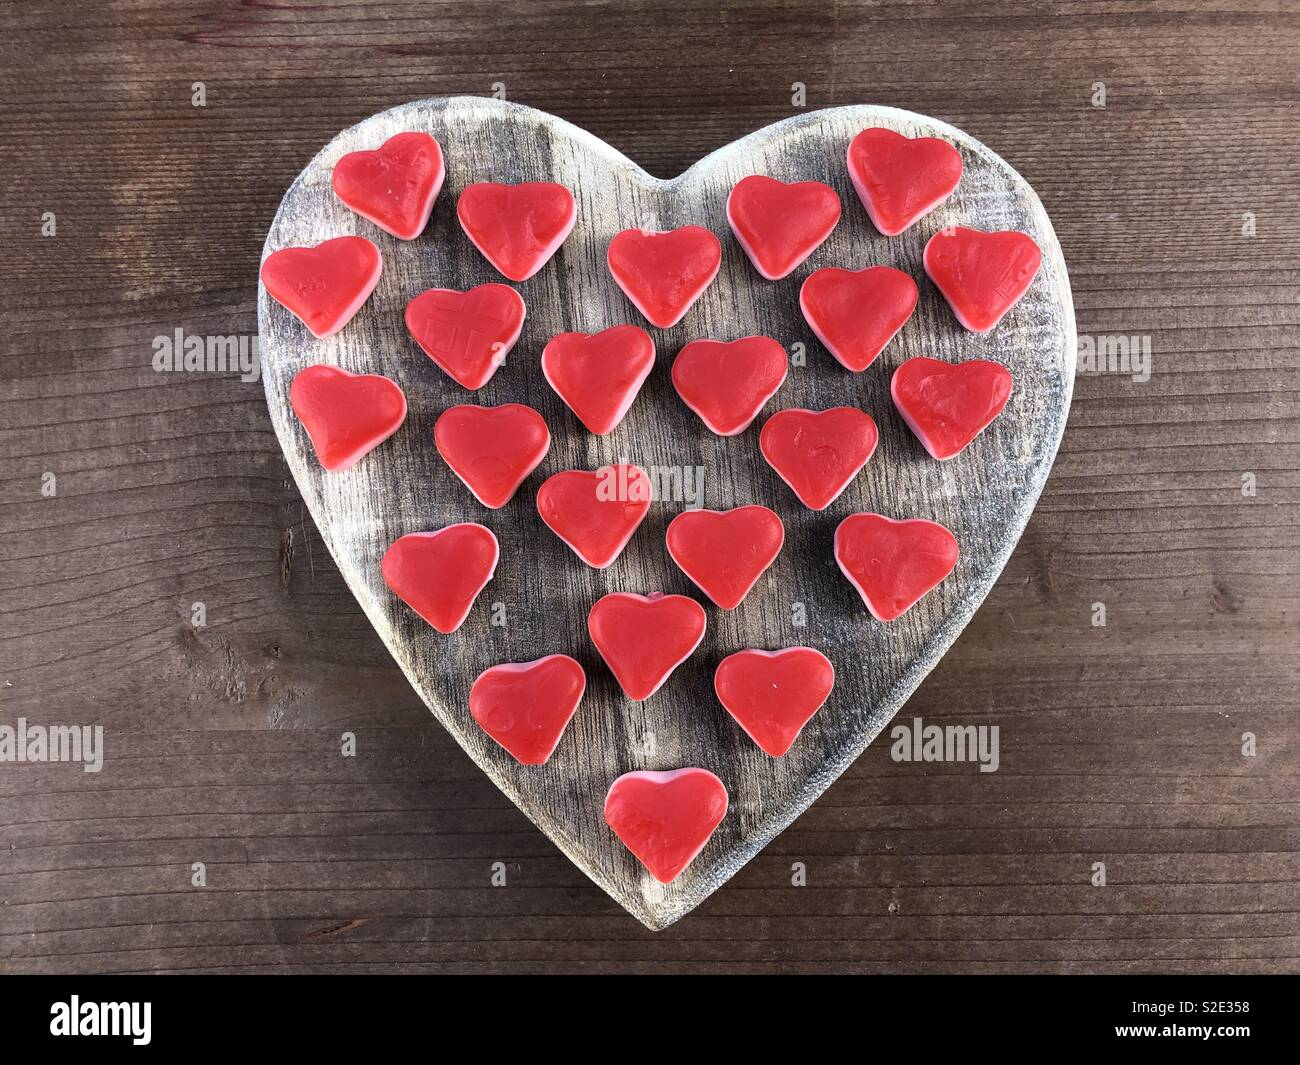 Only love with soft red hearts - Stock Image